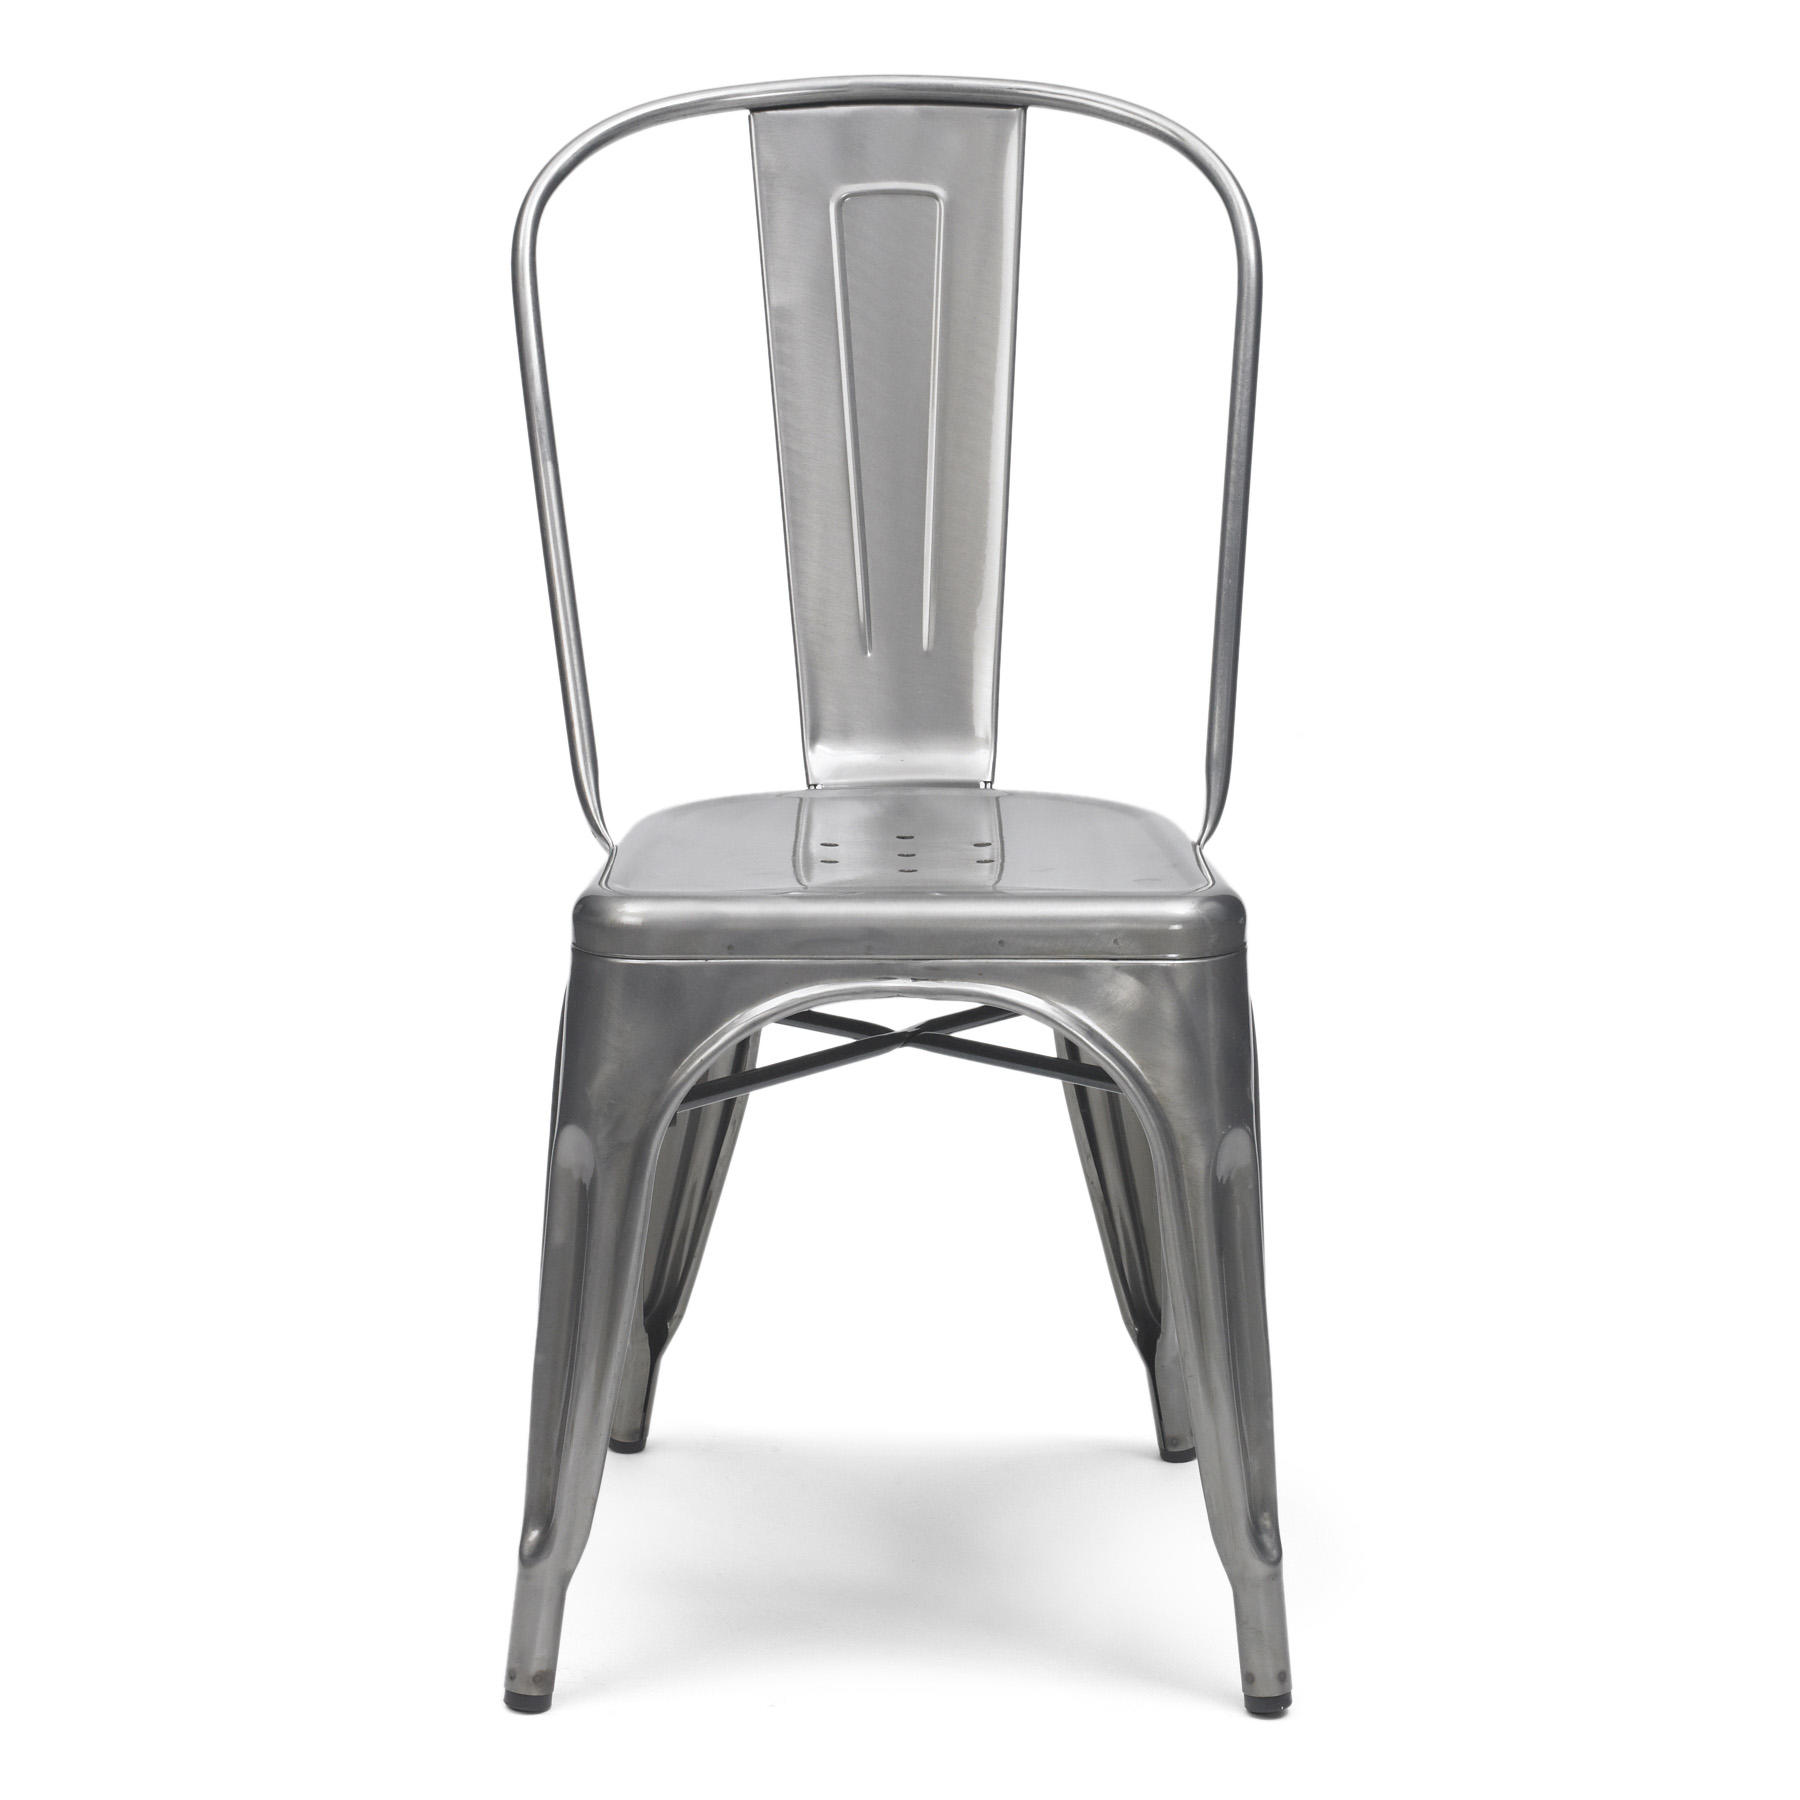 tolix side chair kneeling office chairs xavier pauchard style gun metal from rainbowtrunk